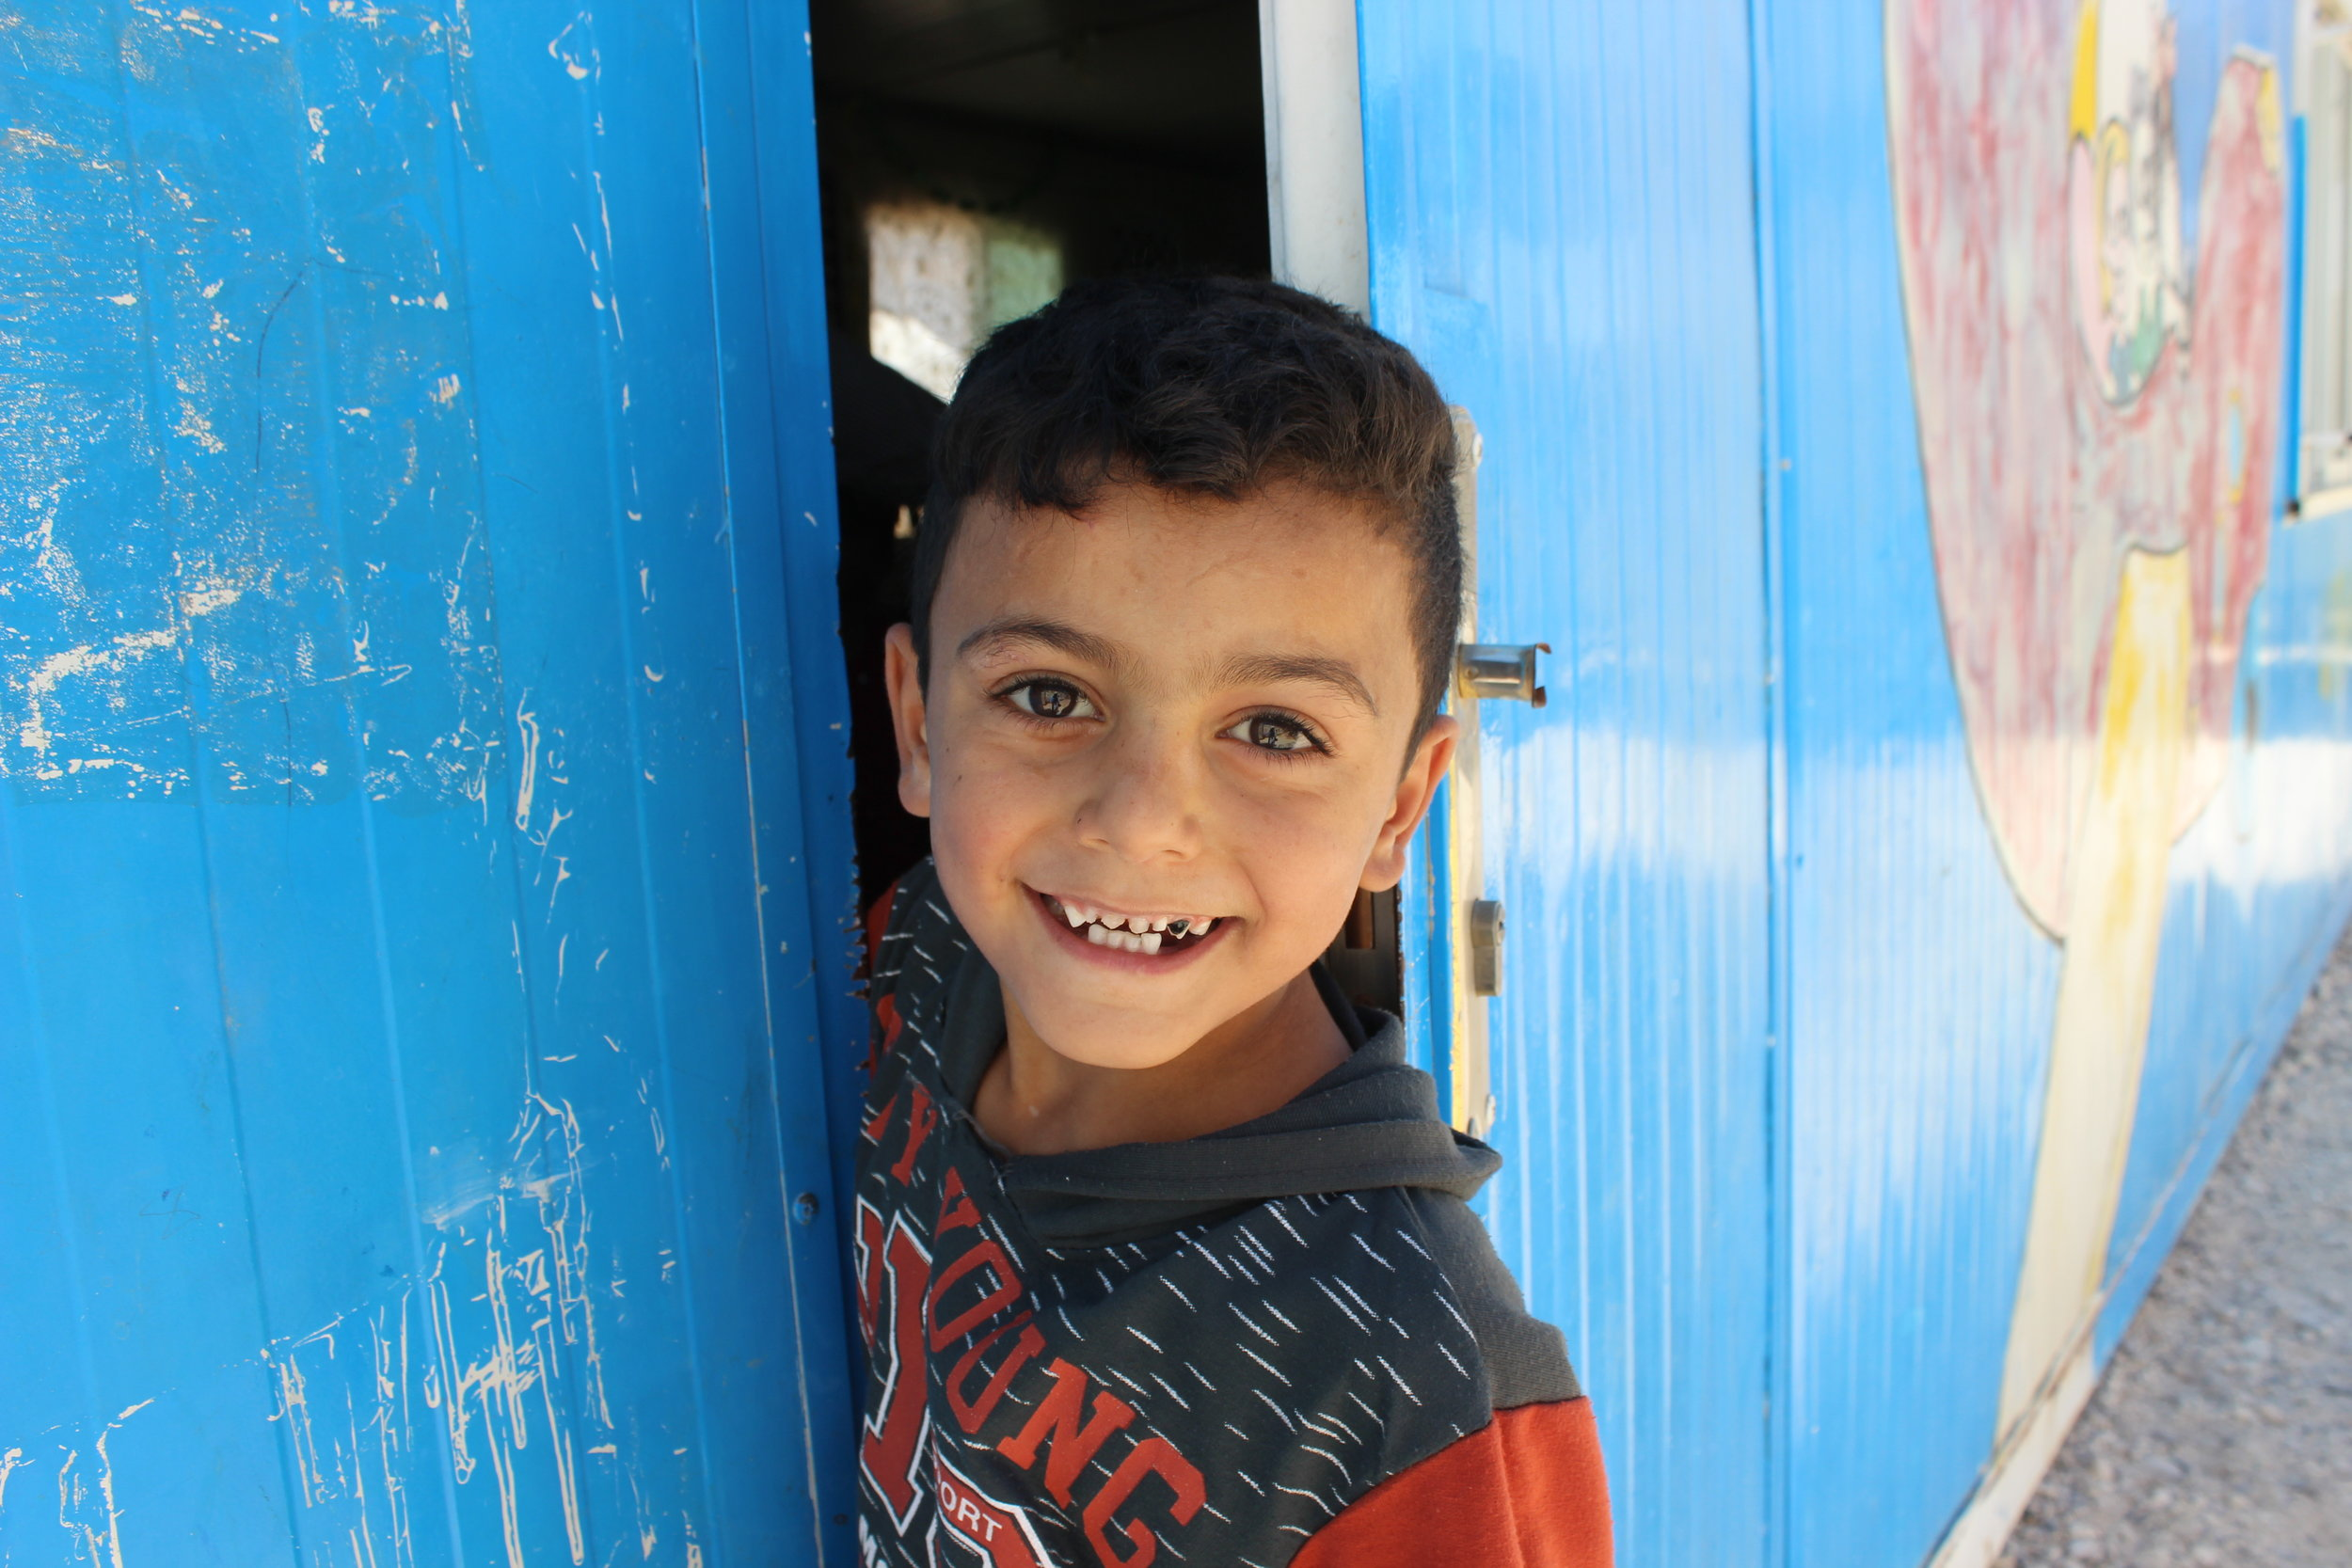 The Azraq School - The Syria Fund's flagship education program provides daily remedial education and enrichment programming to 110+ children in rural South Azraq, Jordan.LEARN MORE